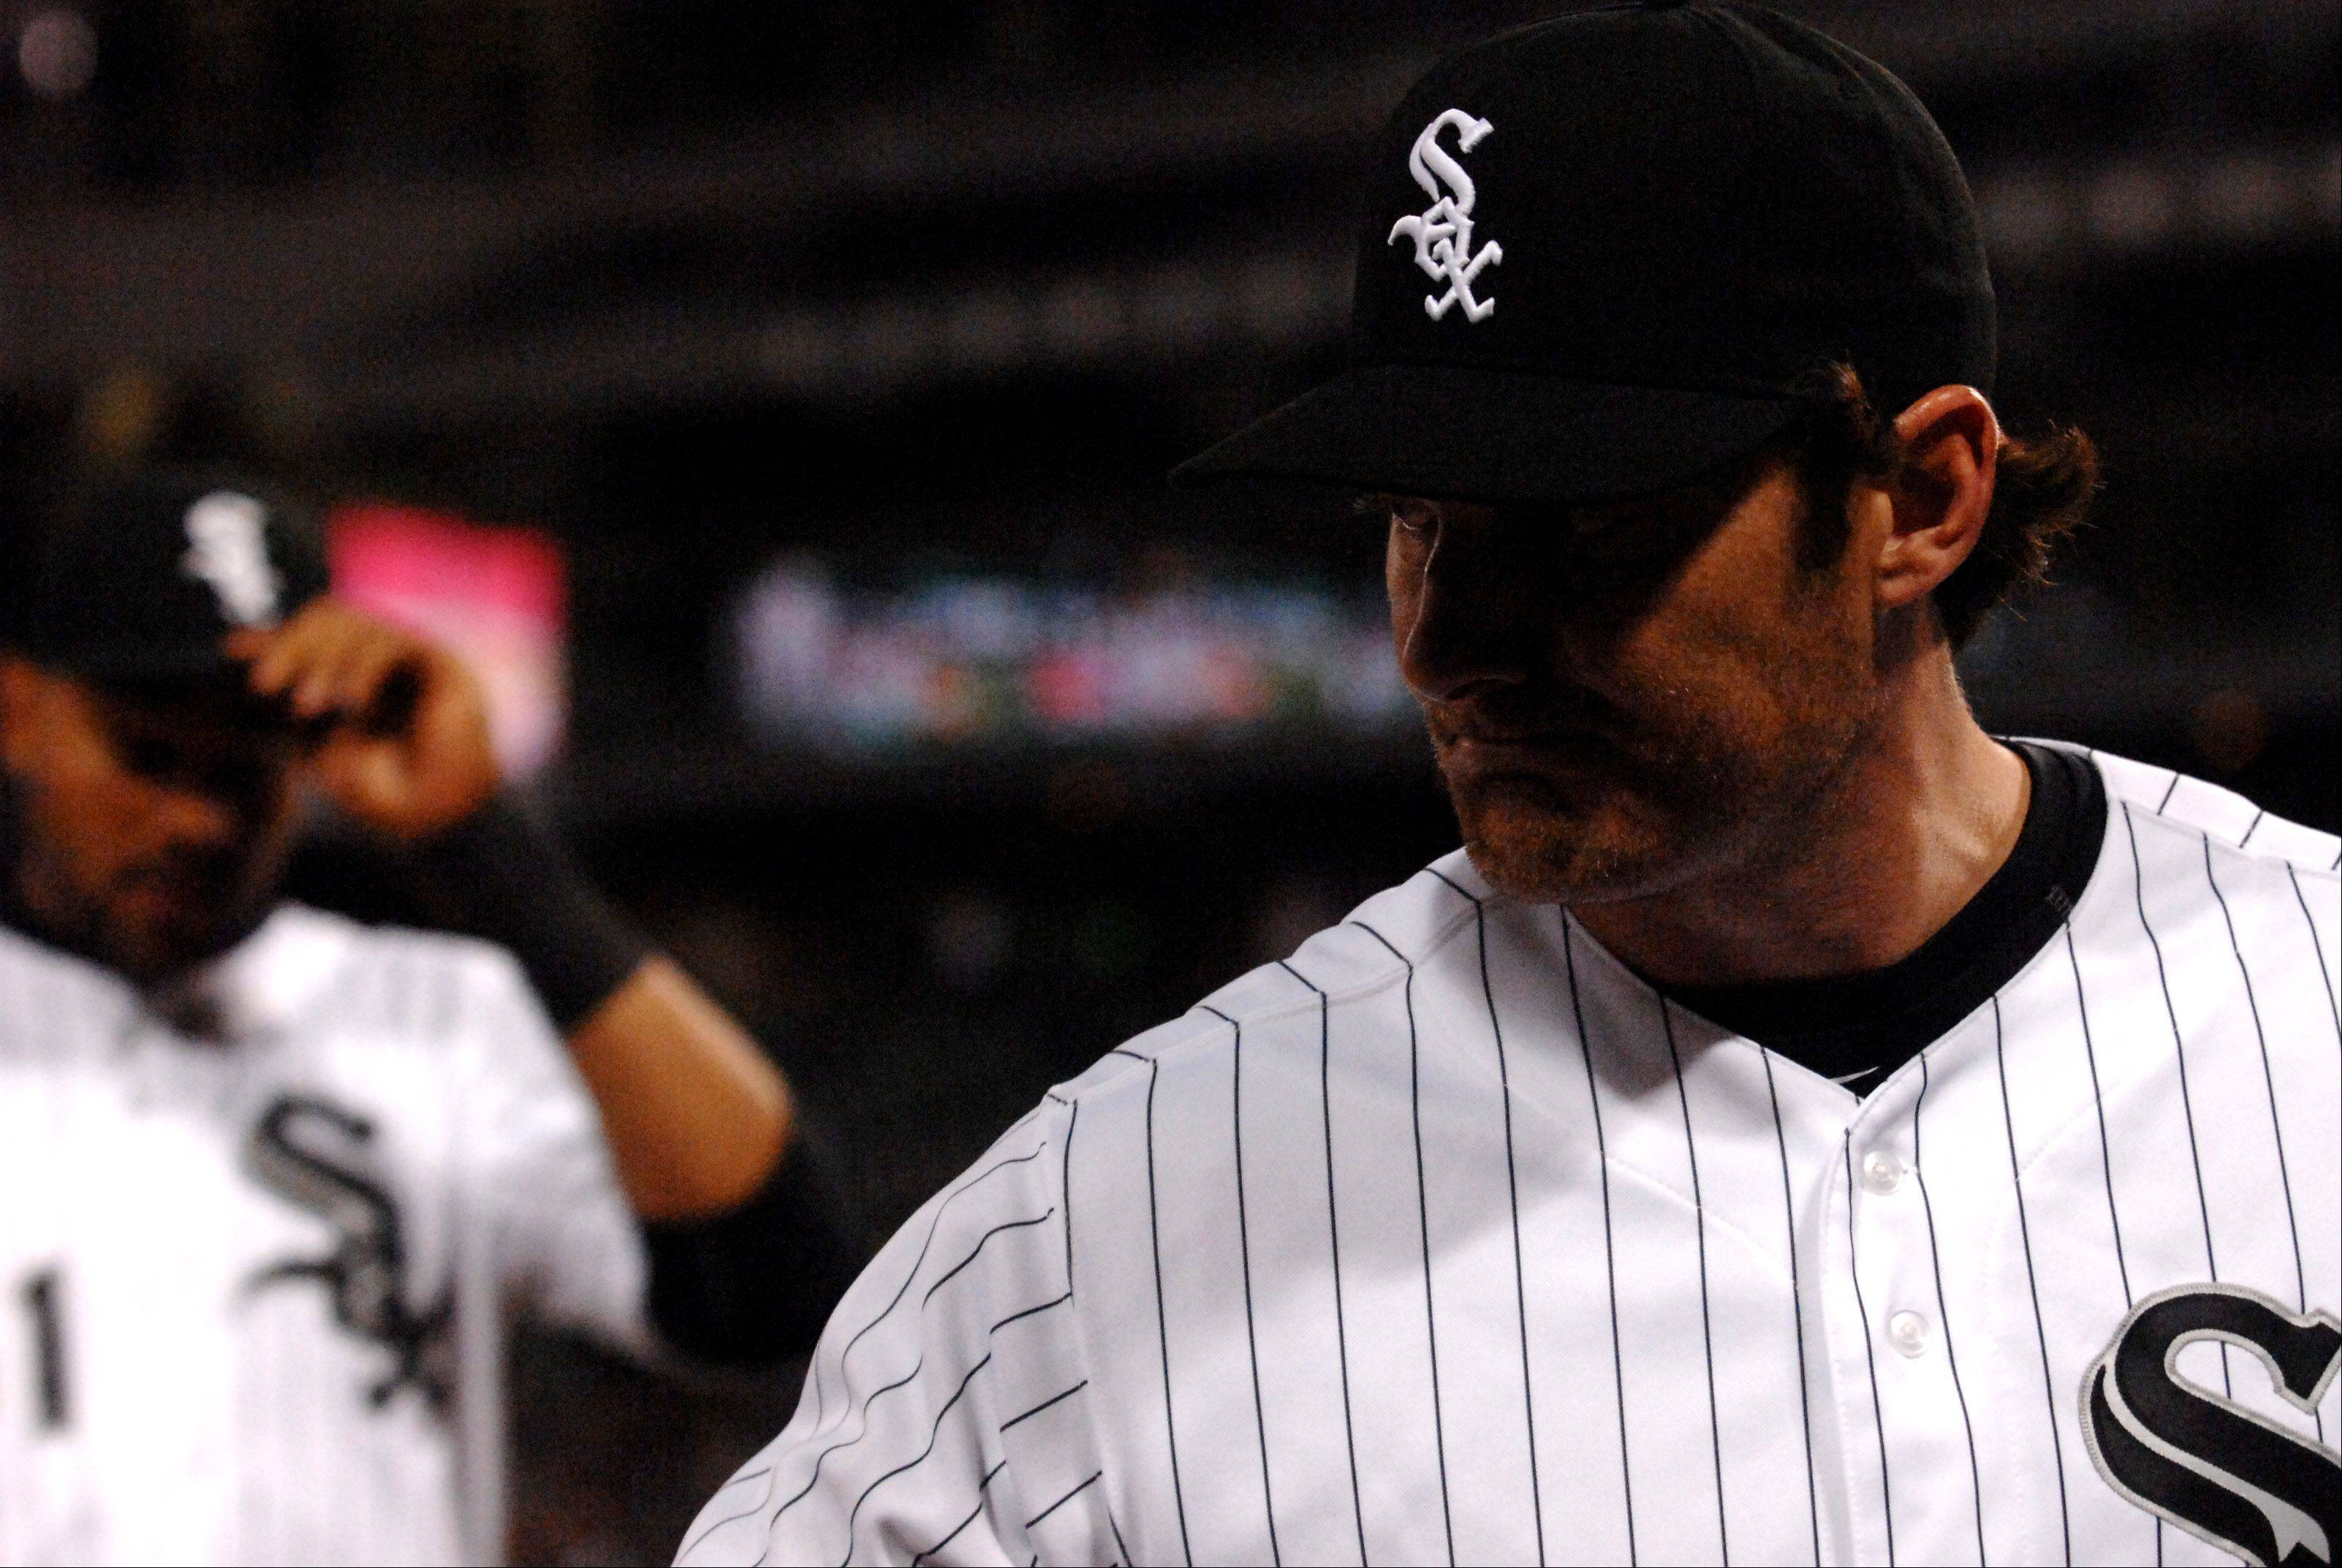 Chicago White Sox starting pitcher Philip Humber heads into the dugout after his final inning of work.